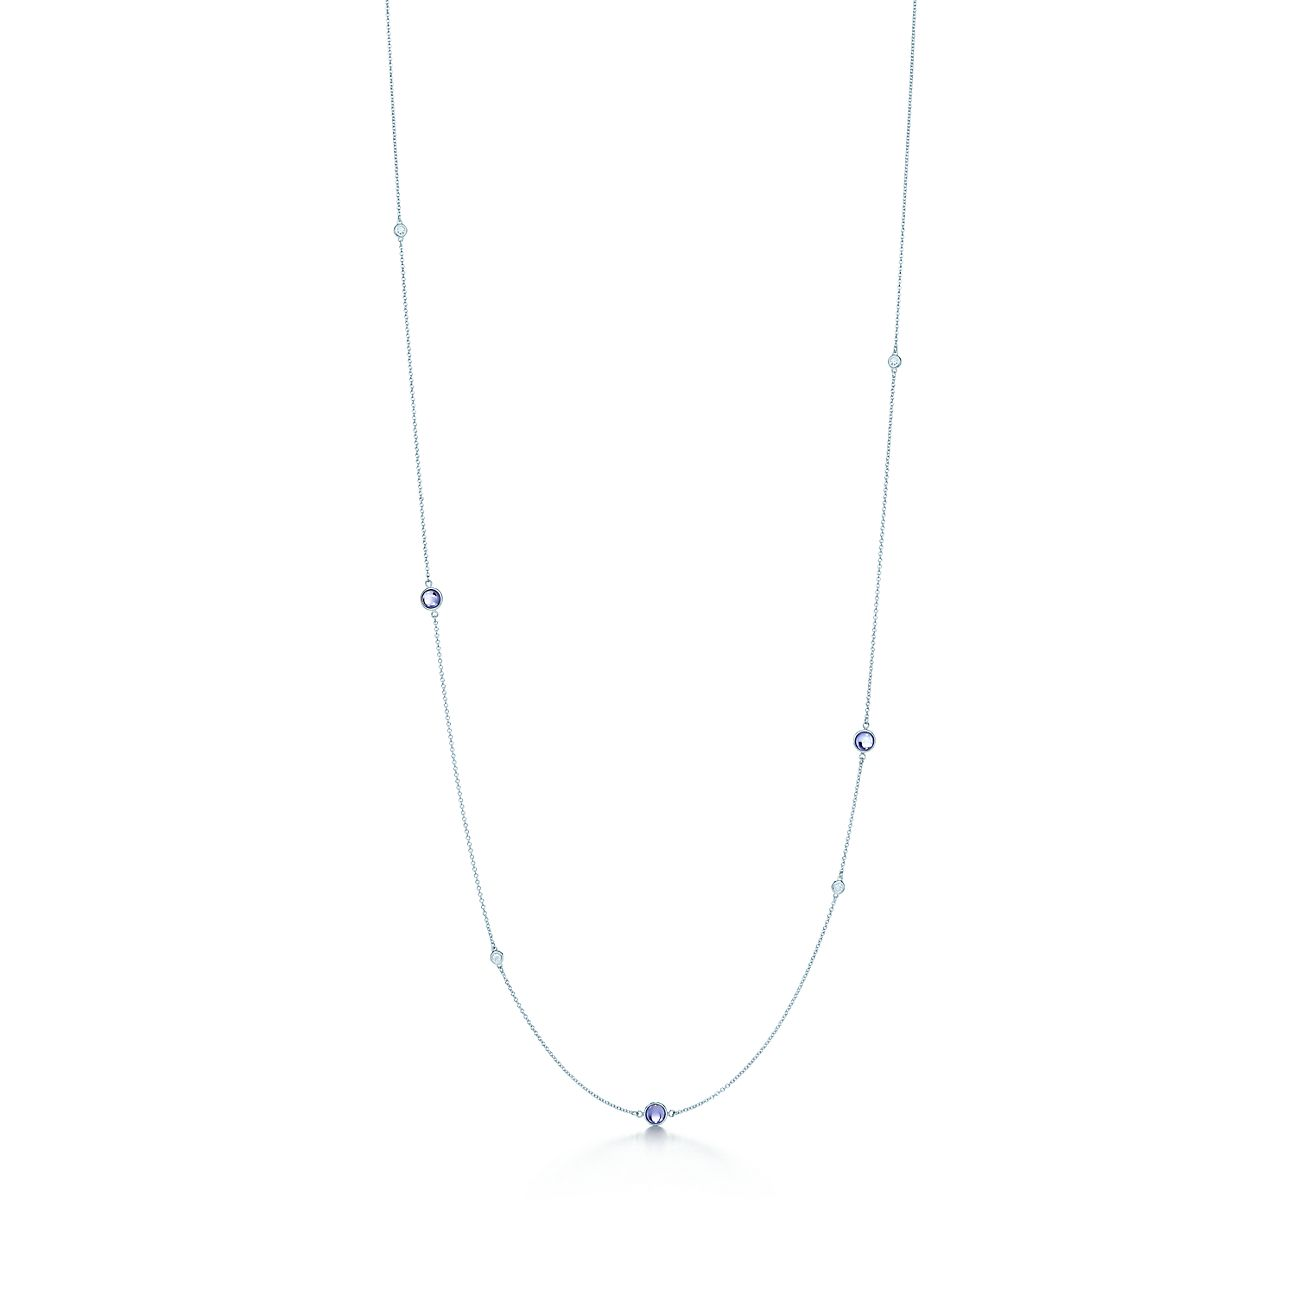 Elsa Peretti Color by the Yard necklace in silver with tanzanite and diamonds Tiffany & Co. qNY7t